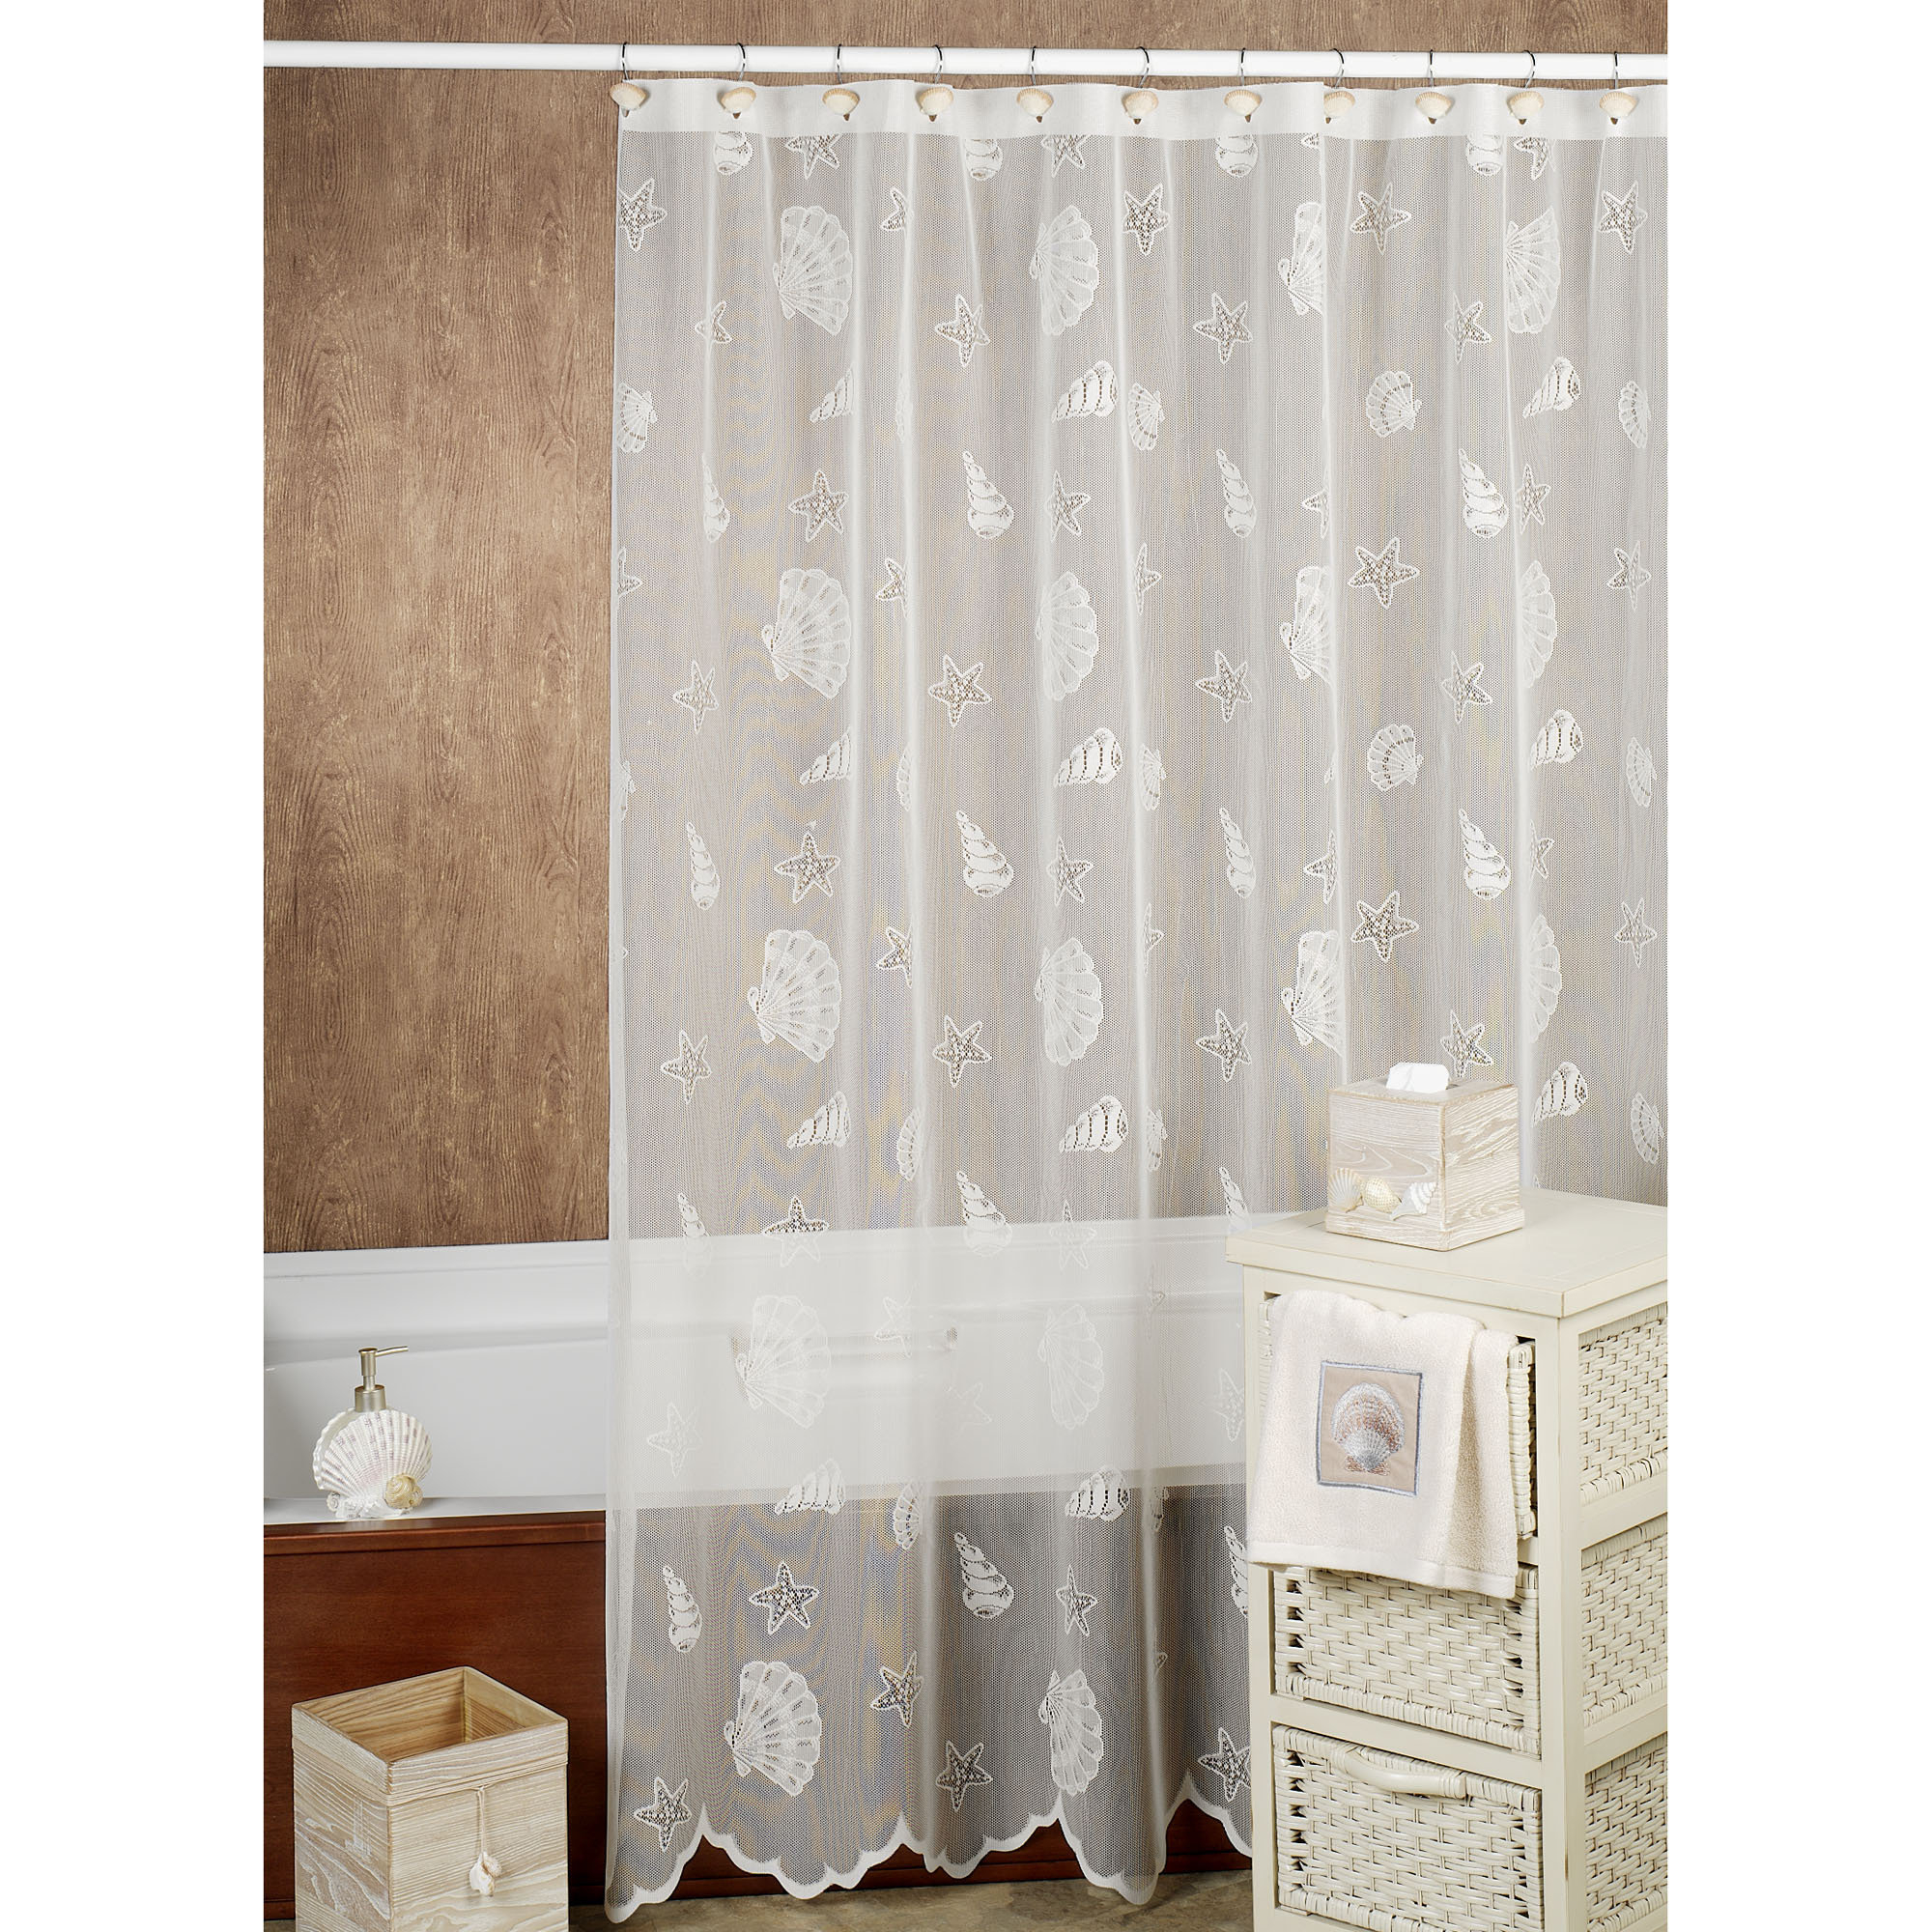 Incredible Brown To White Ruffled Extra Long Shower Curtain Added with sizing 2000 X 2000